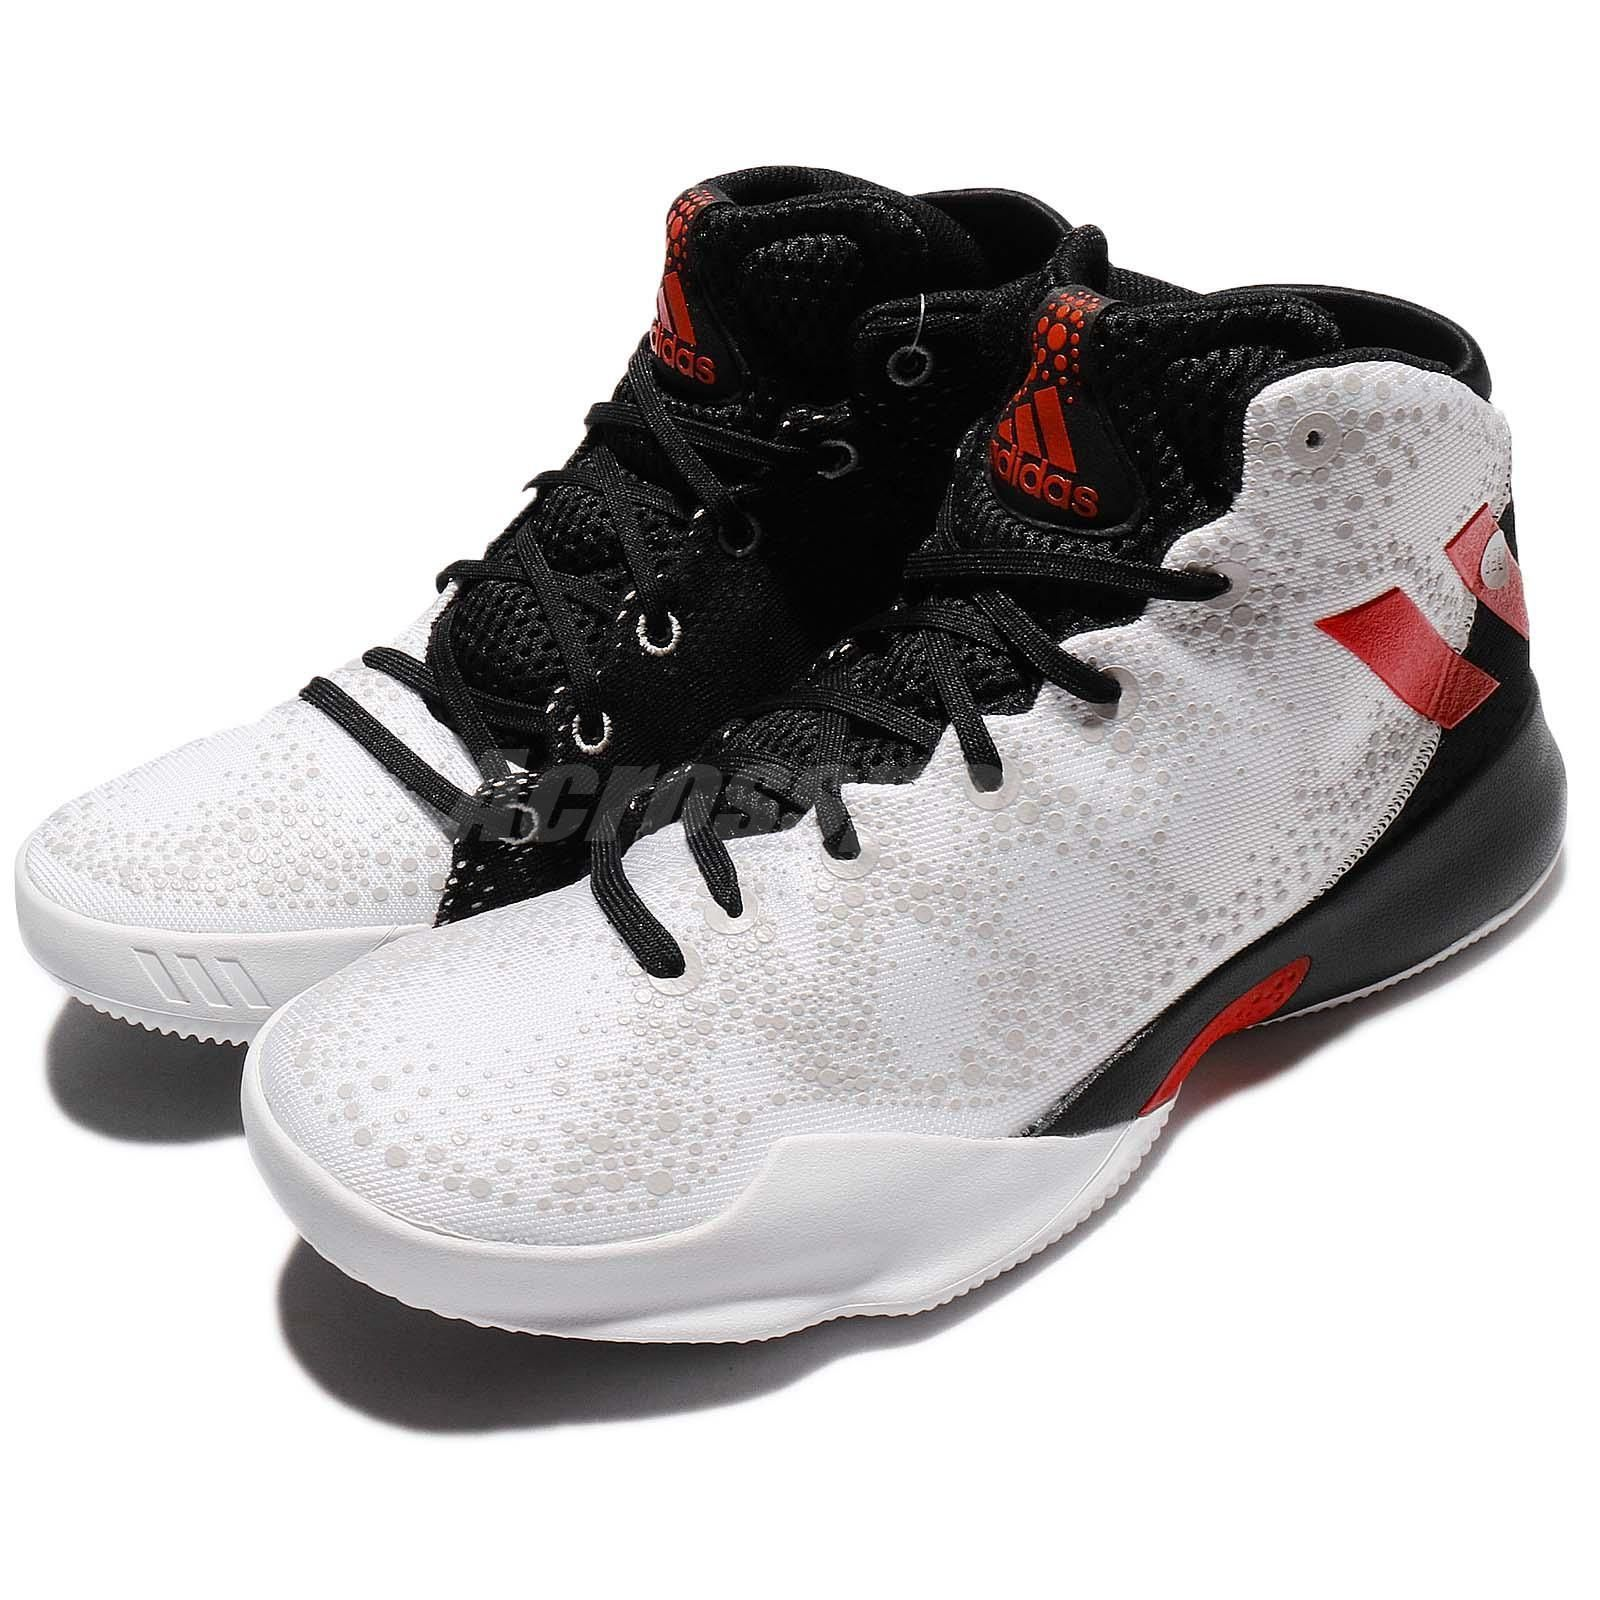 adidas Crazy Heat White Scarlet Black Men Basketball Shoes Sneakers BY4529